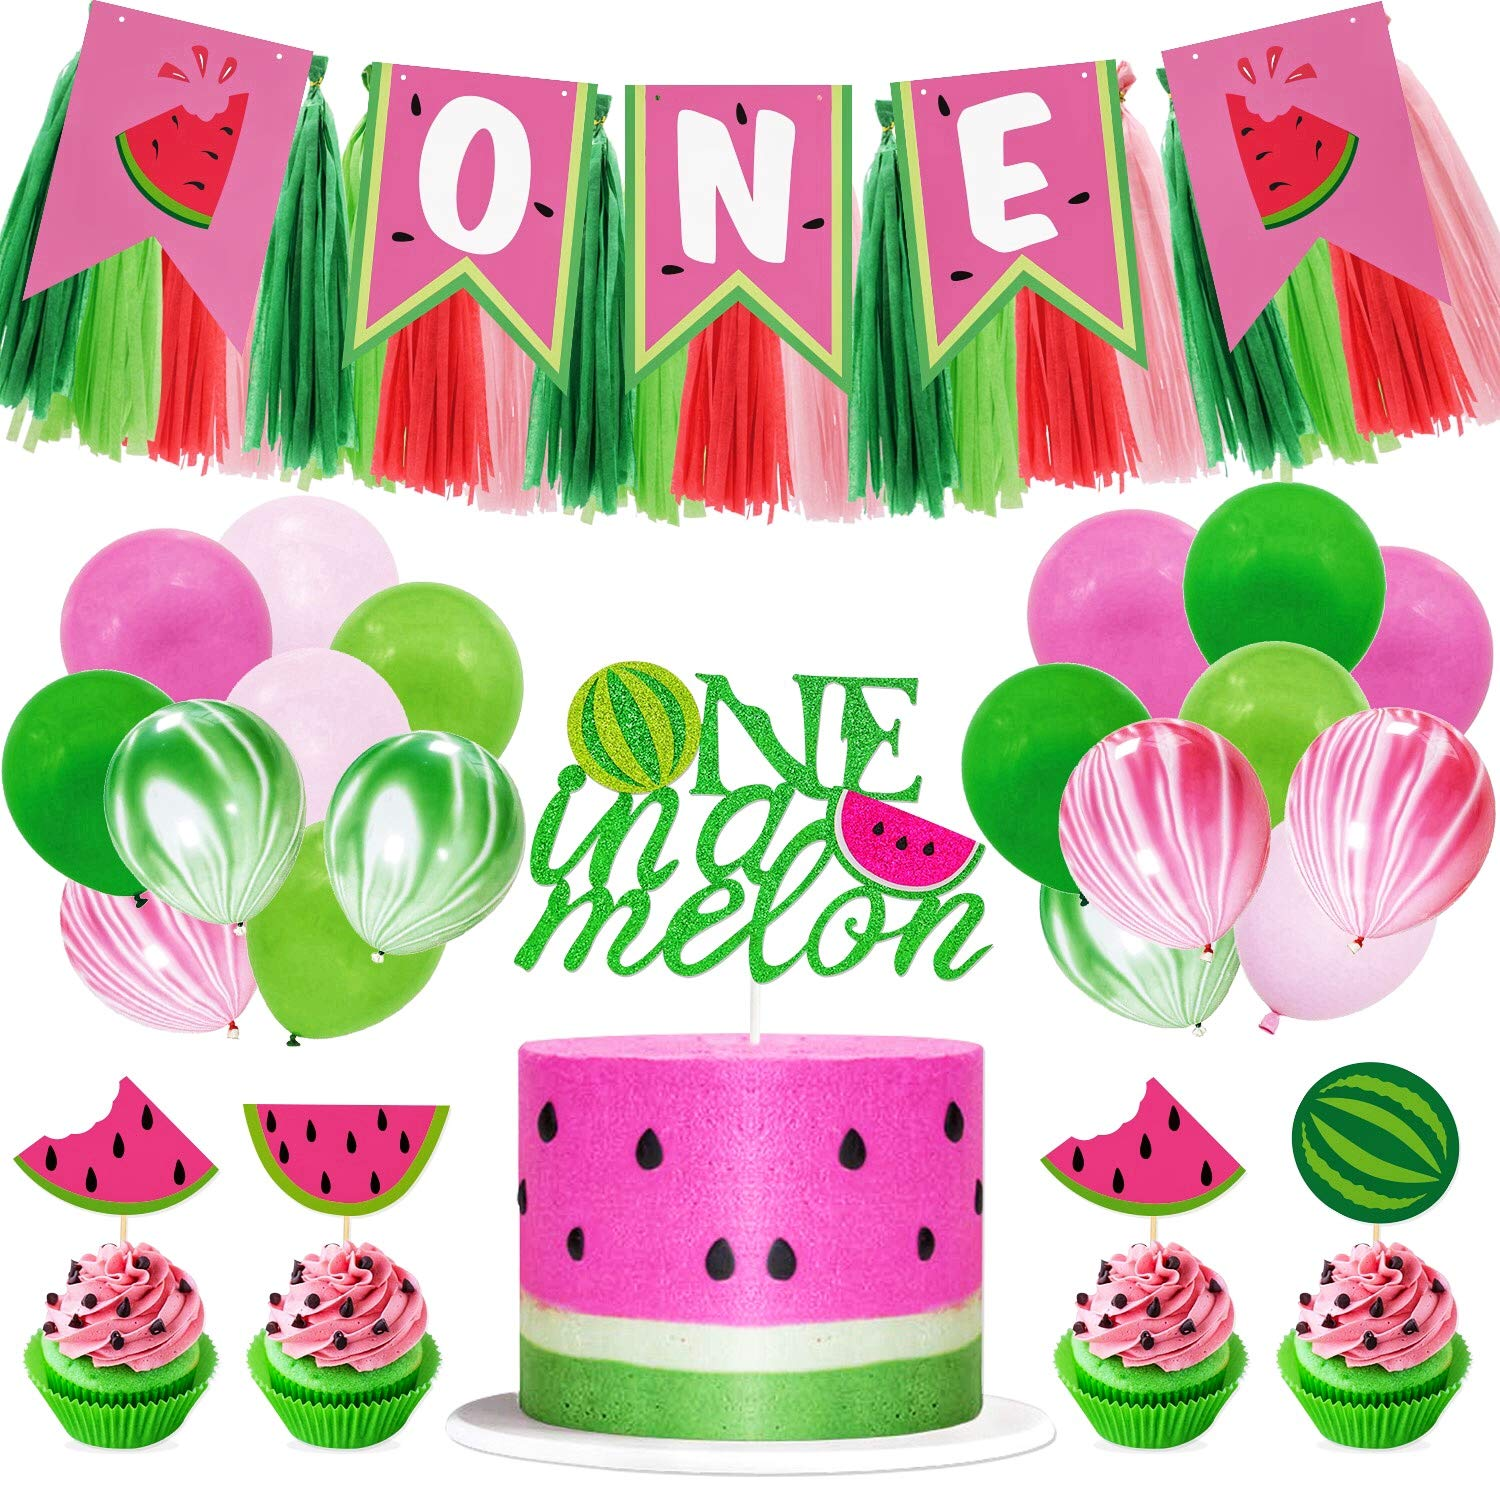 Watermelon Birthday Party Decorations One In A Melon Cake Topper Watermelon Cupcake Topper Melon Balloon 1st Bday High Chair Banner for Summer Fruit Themed First Birthday Party Supplies Glitter Decor by Joymee